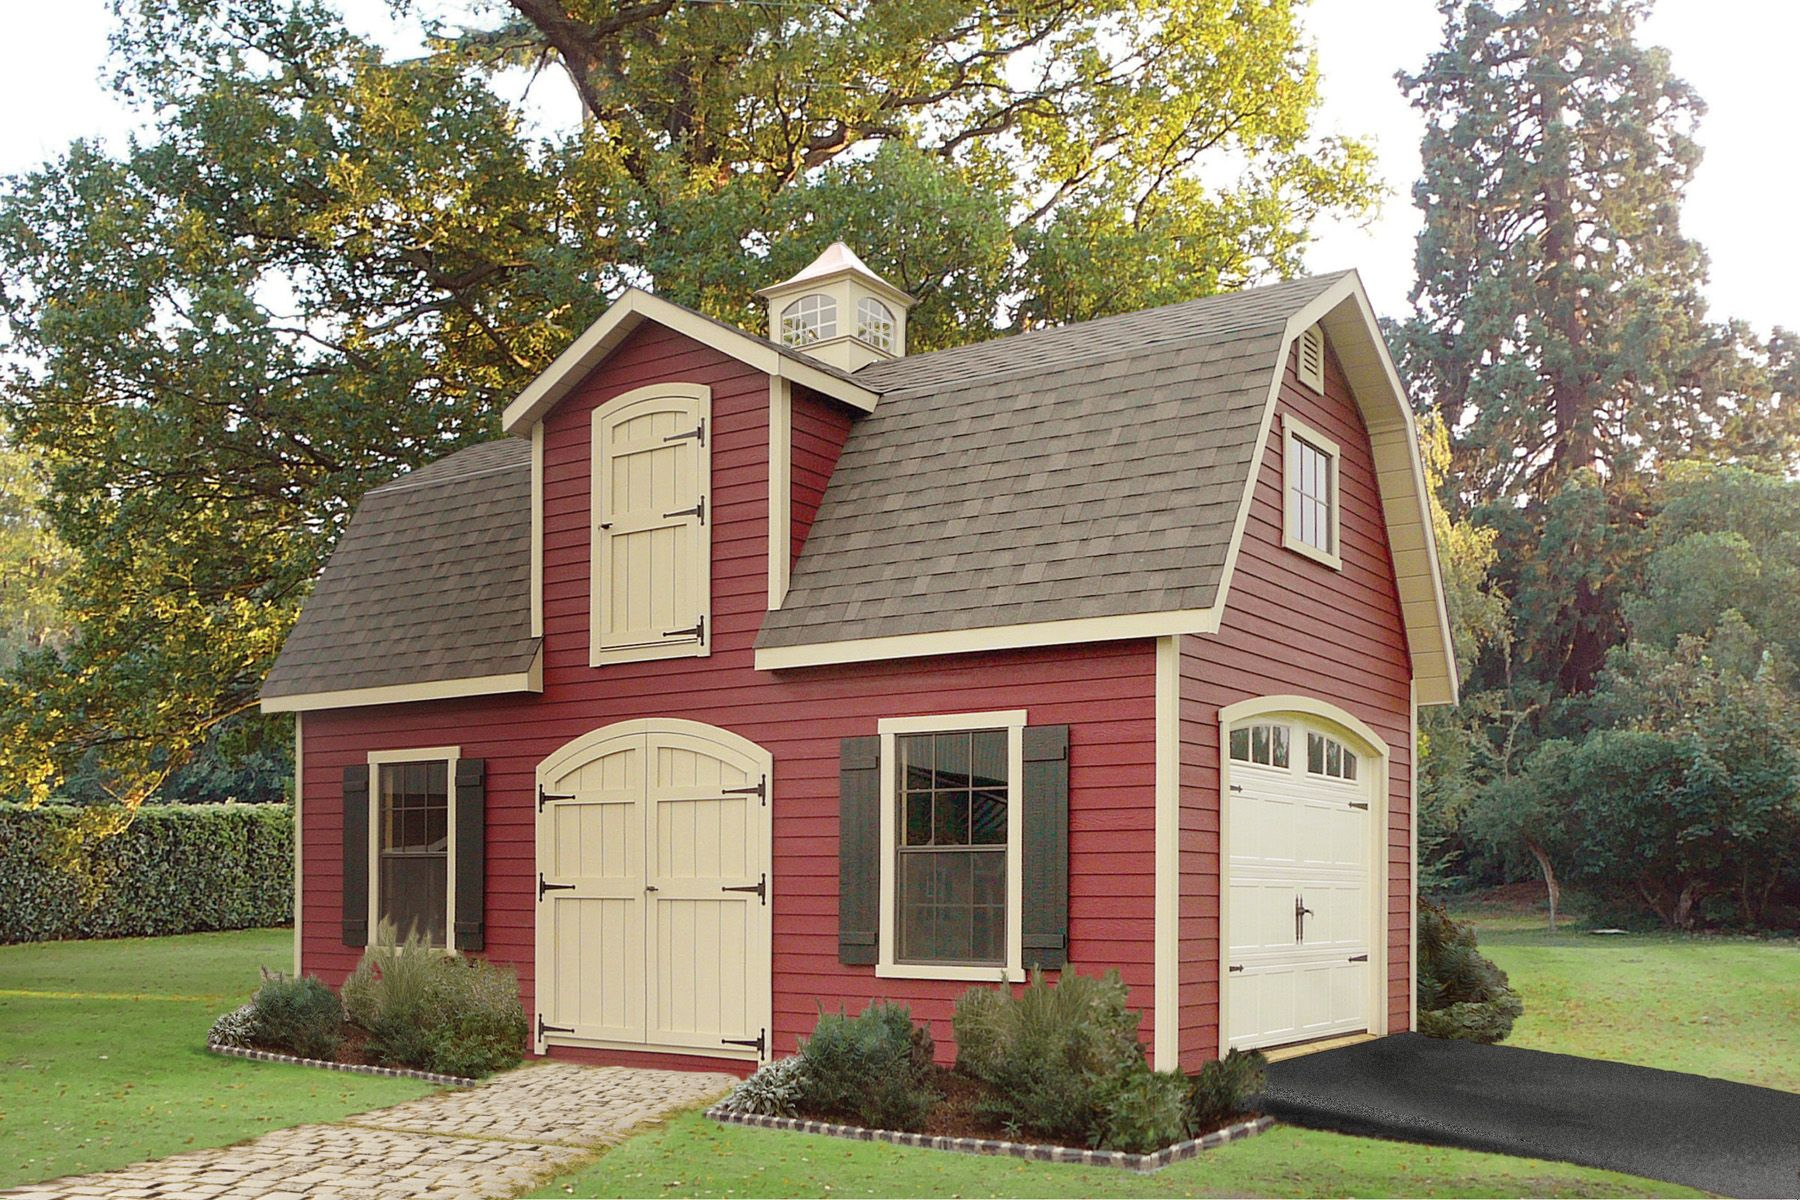 14x24 two story dutch sheds pinterest dutch for 14x24 cabin plans